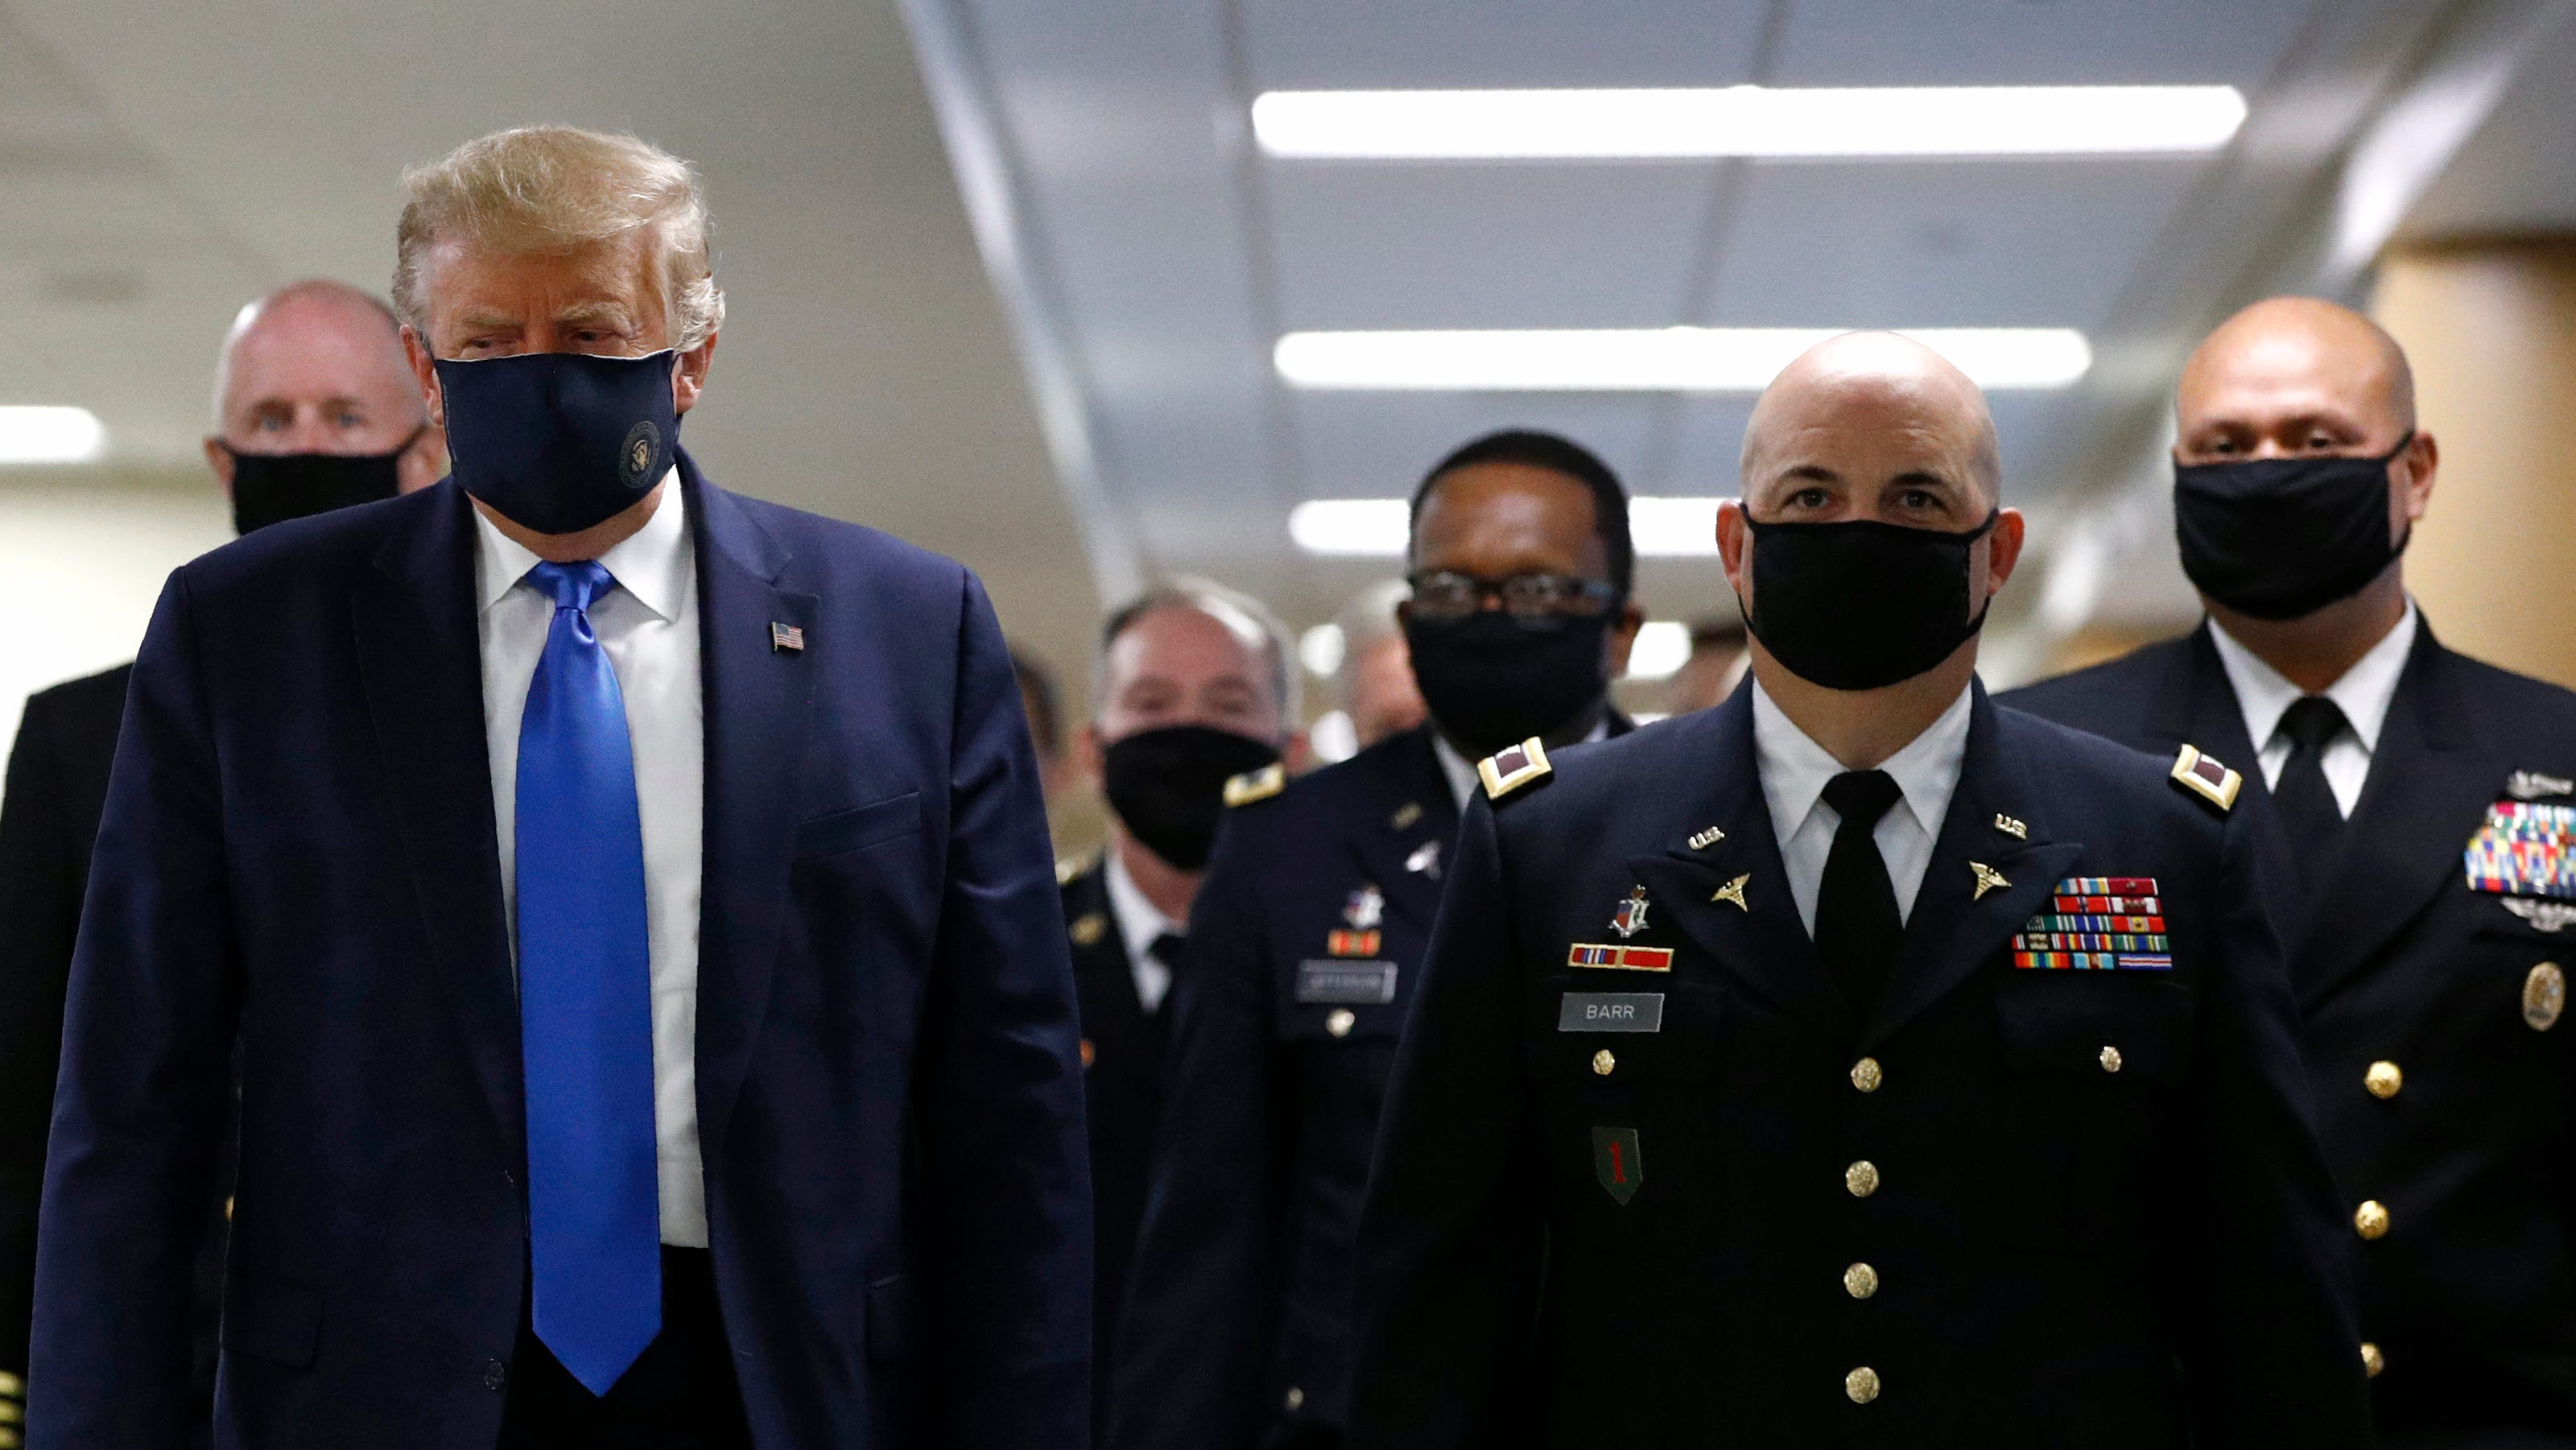 Trump wears mask while visiting wounded soldiers, medical workers ...